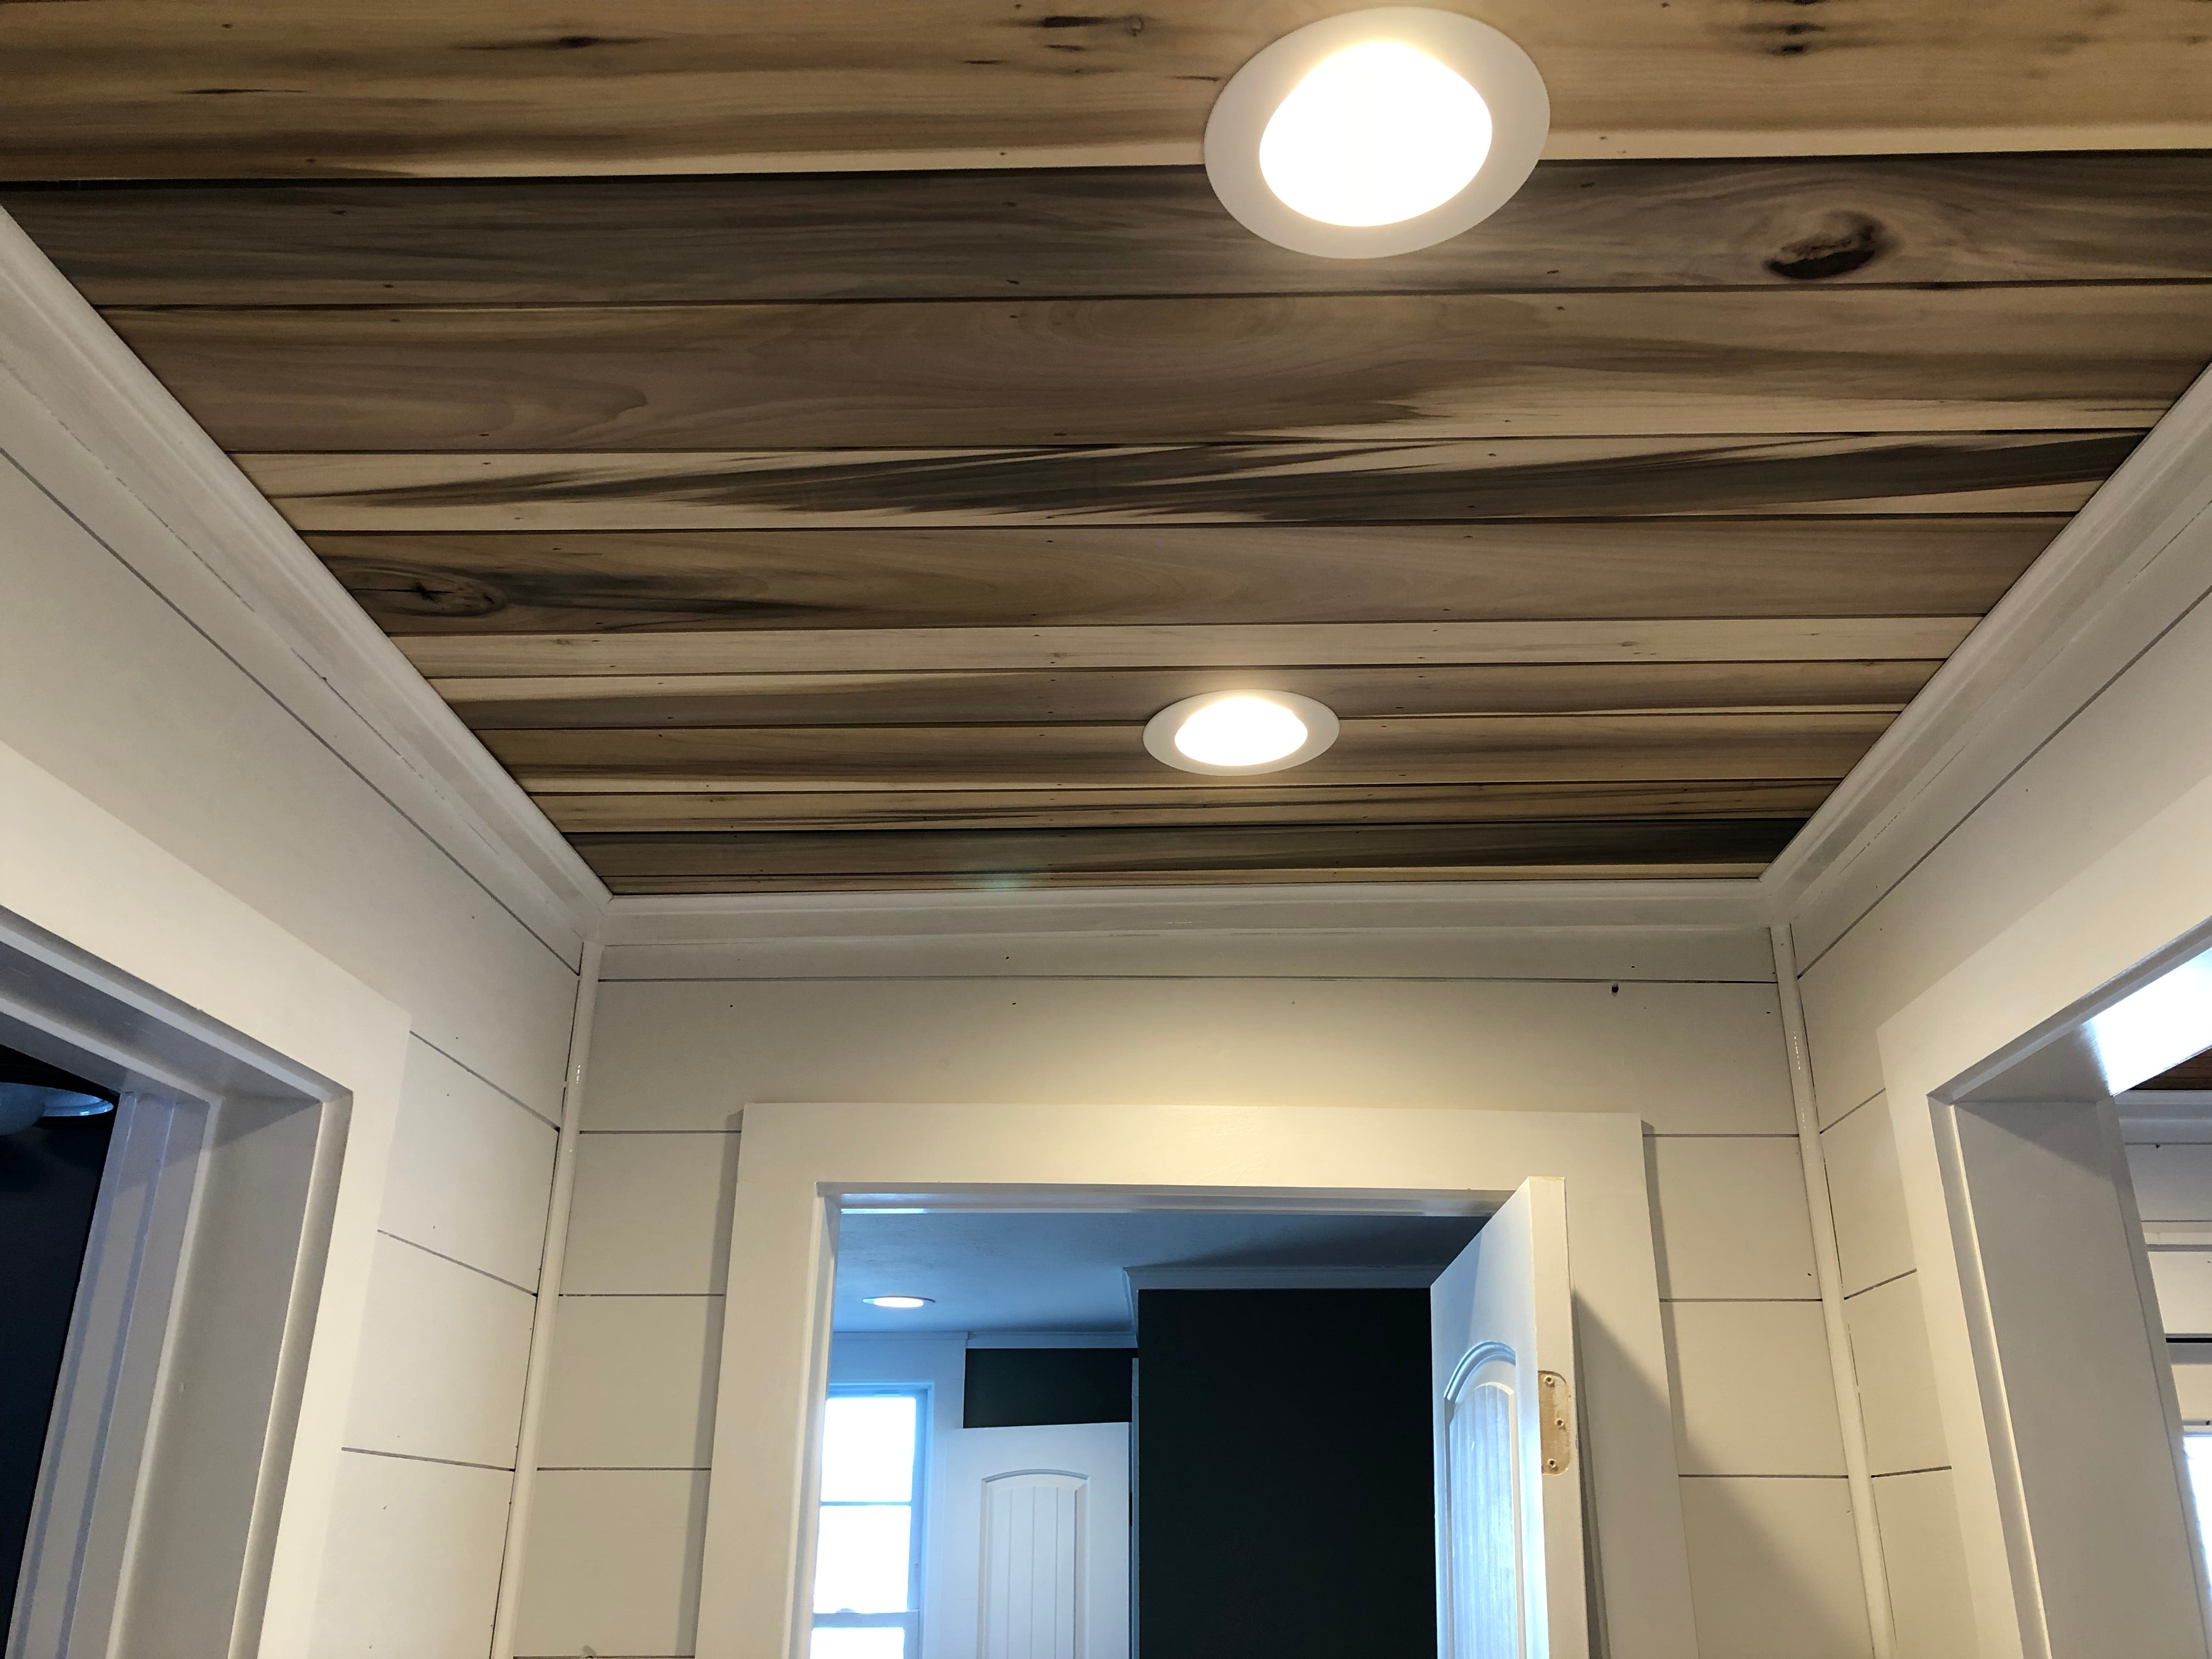 Dutch Creek Rustic Ceiling Plank - Reclaimed Direct  Dutch Creek Rustic Ceiling Plank, Reclaimed Wood